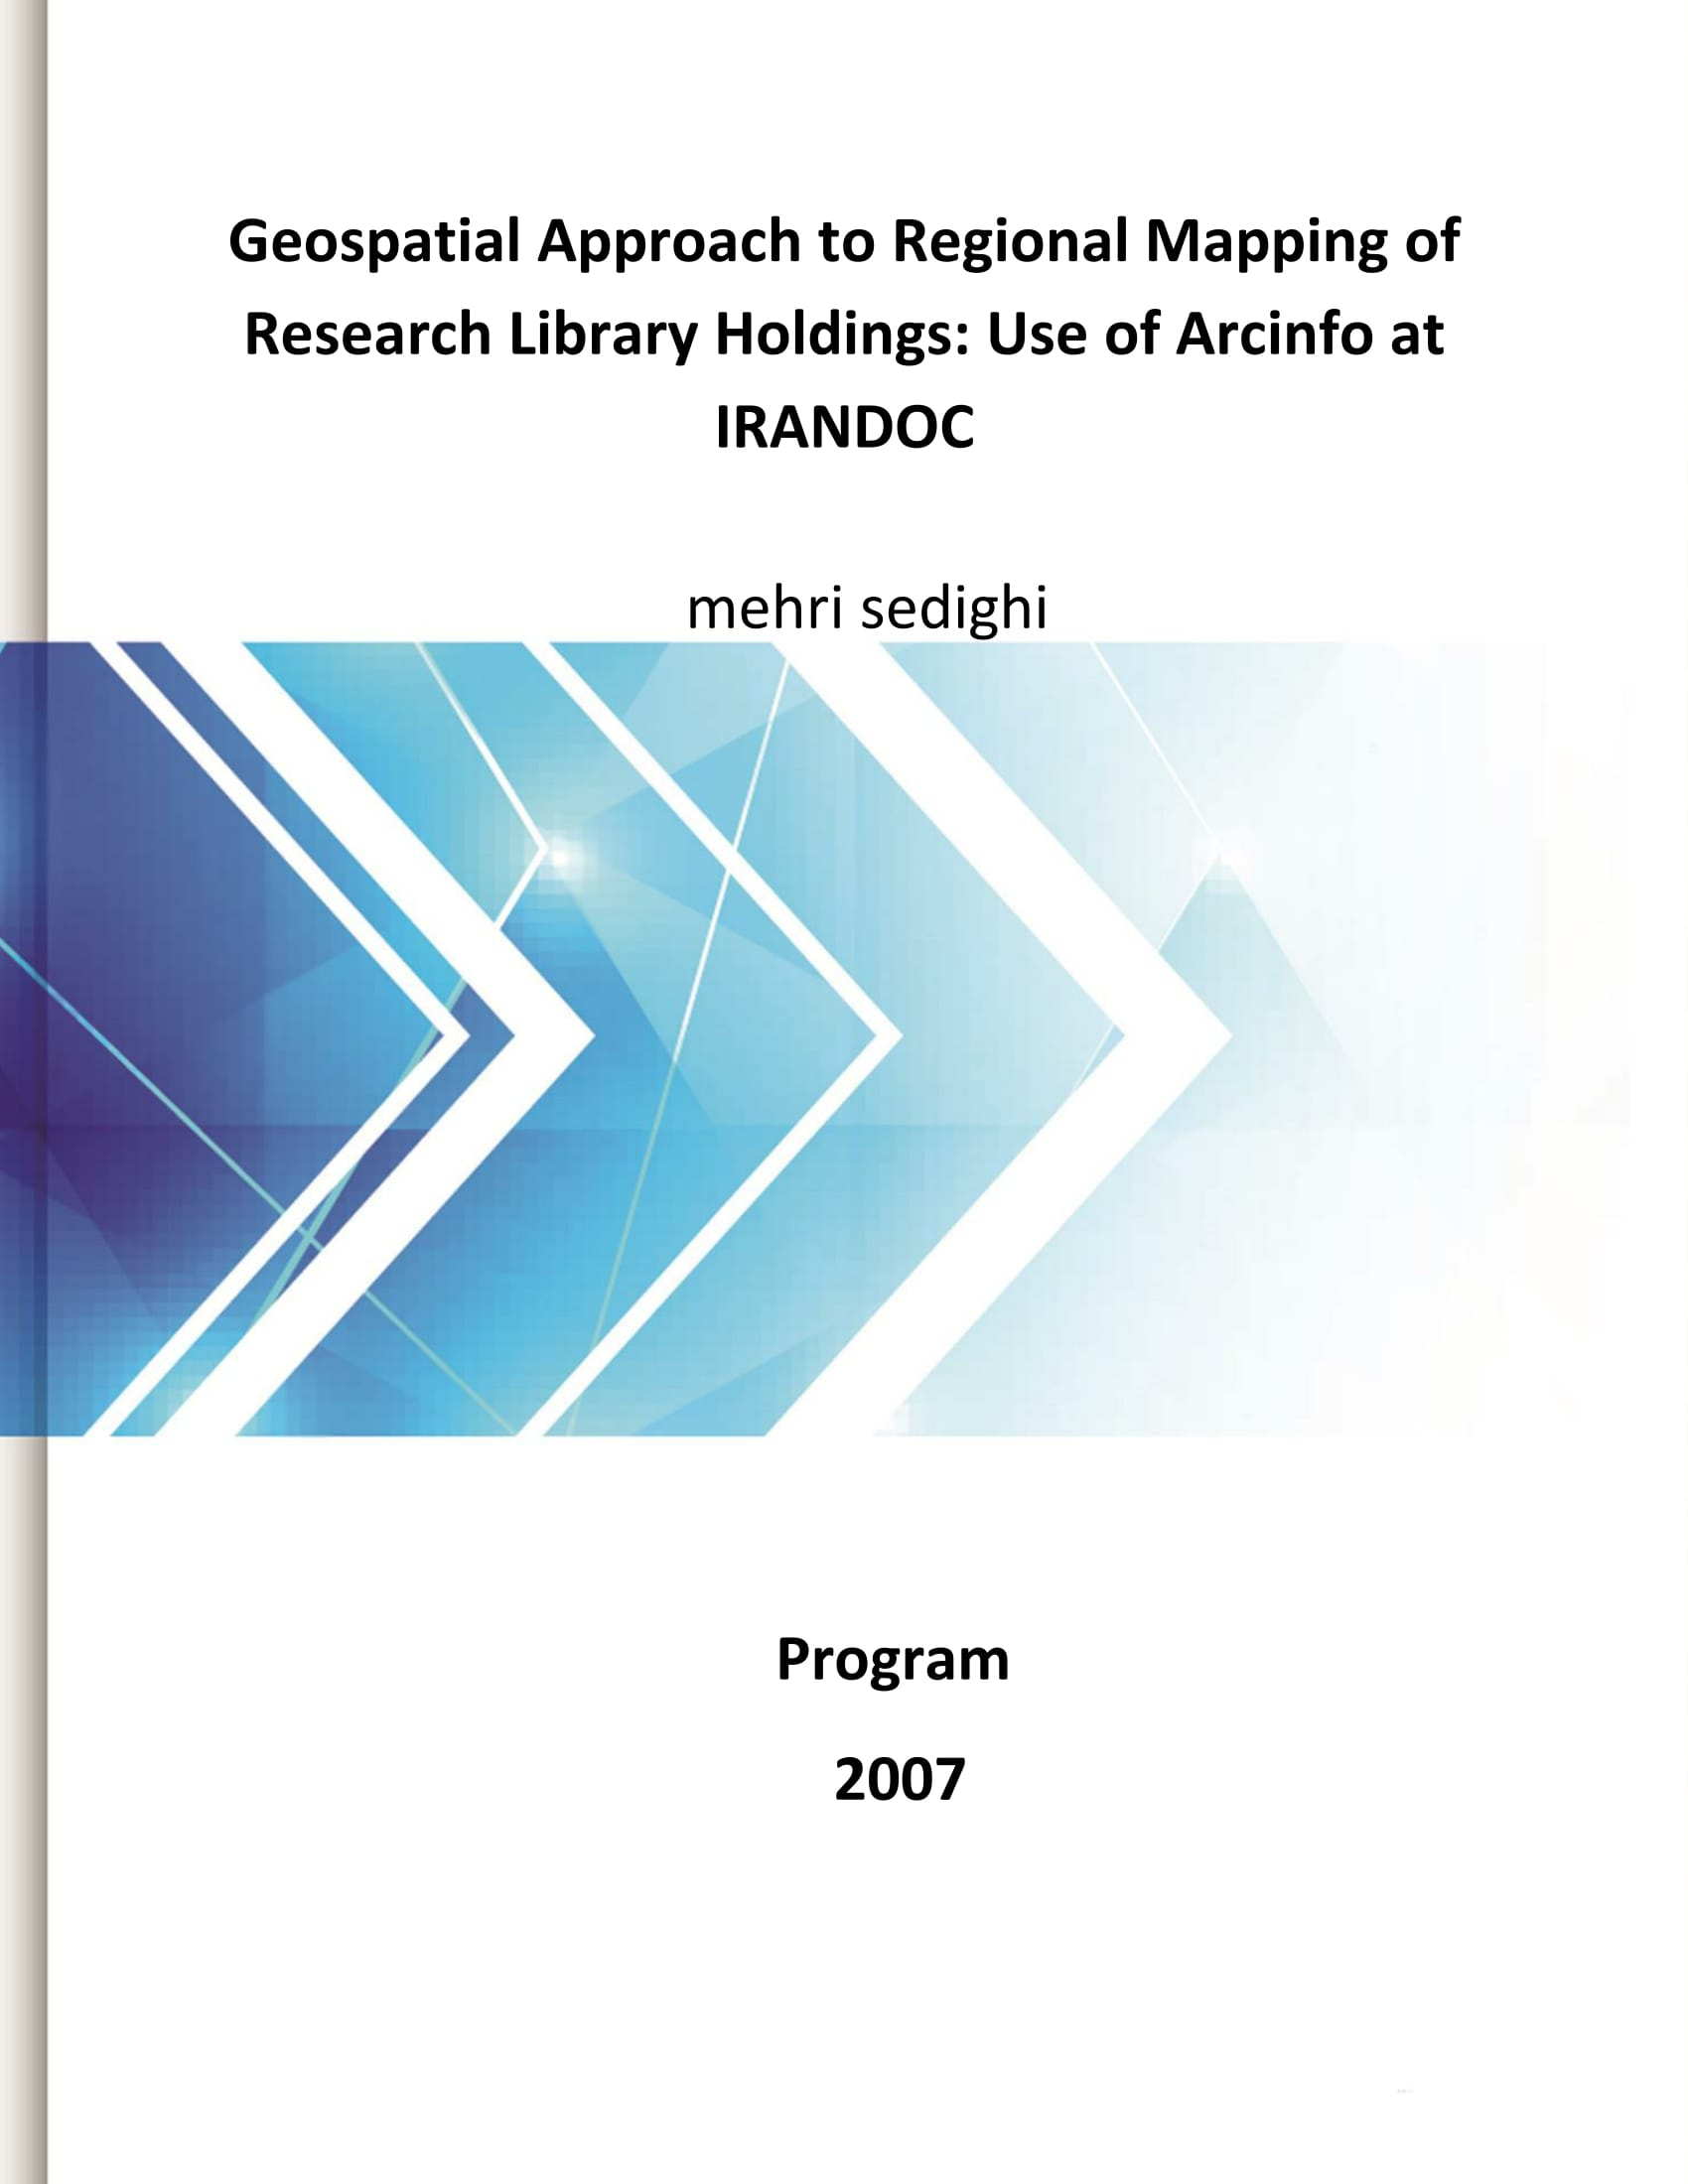 Geospatial Approach to Regional Mapping of Research Library Holdings: Use of Arcinfo at IRANDOC